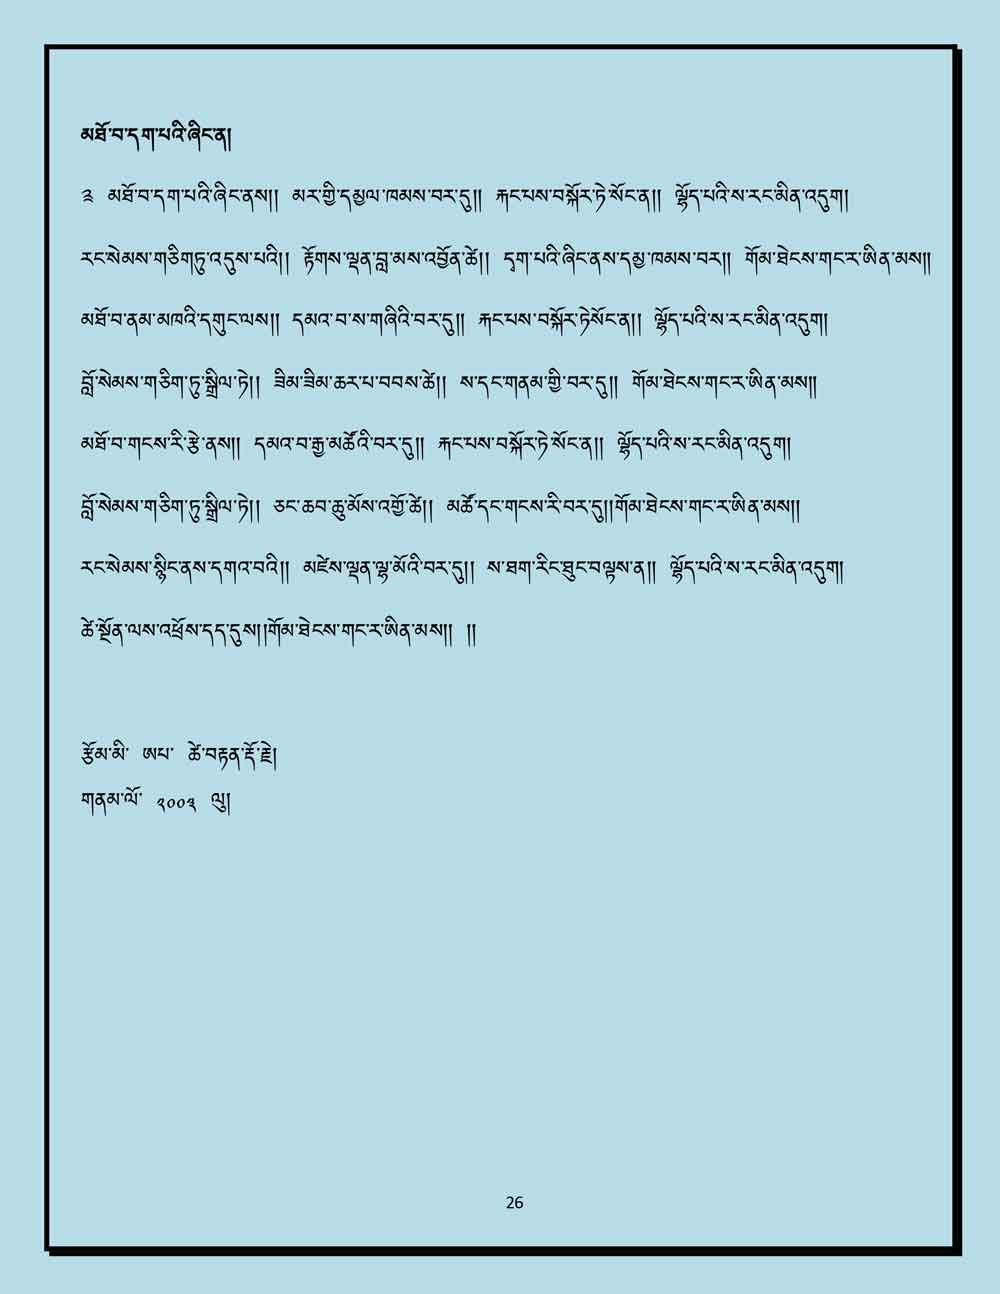 Ap-Tseten-Lyrics-26.jpg